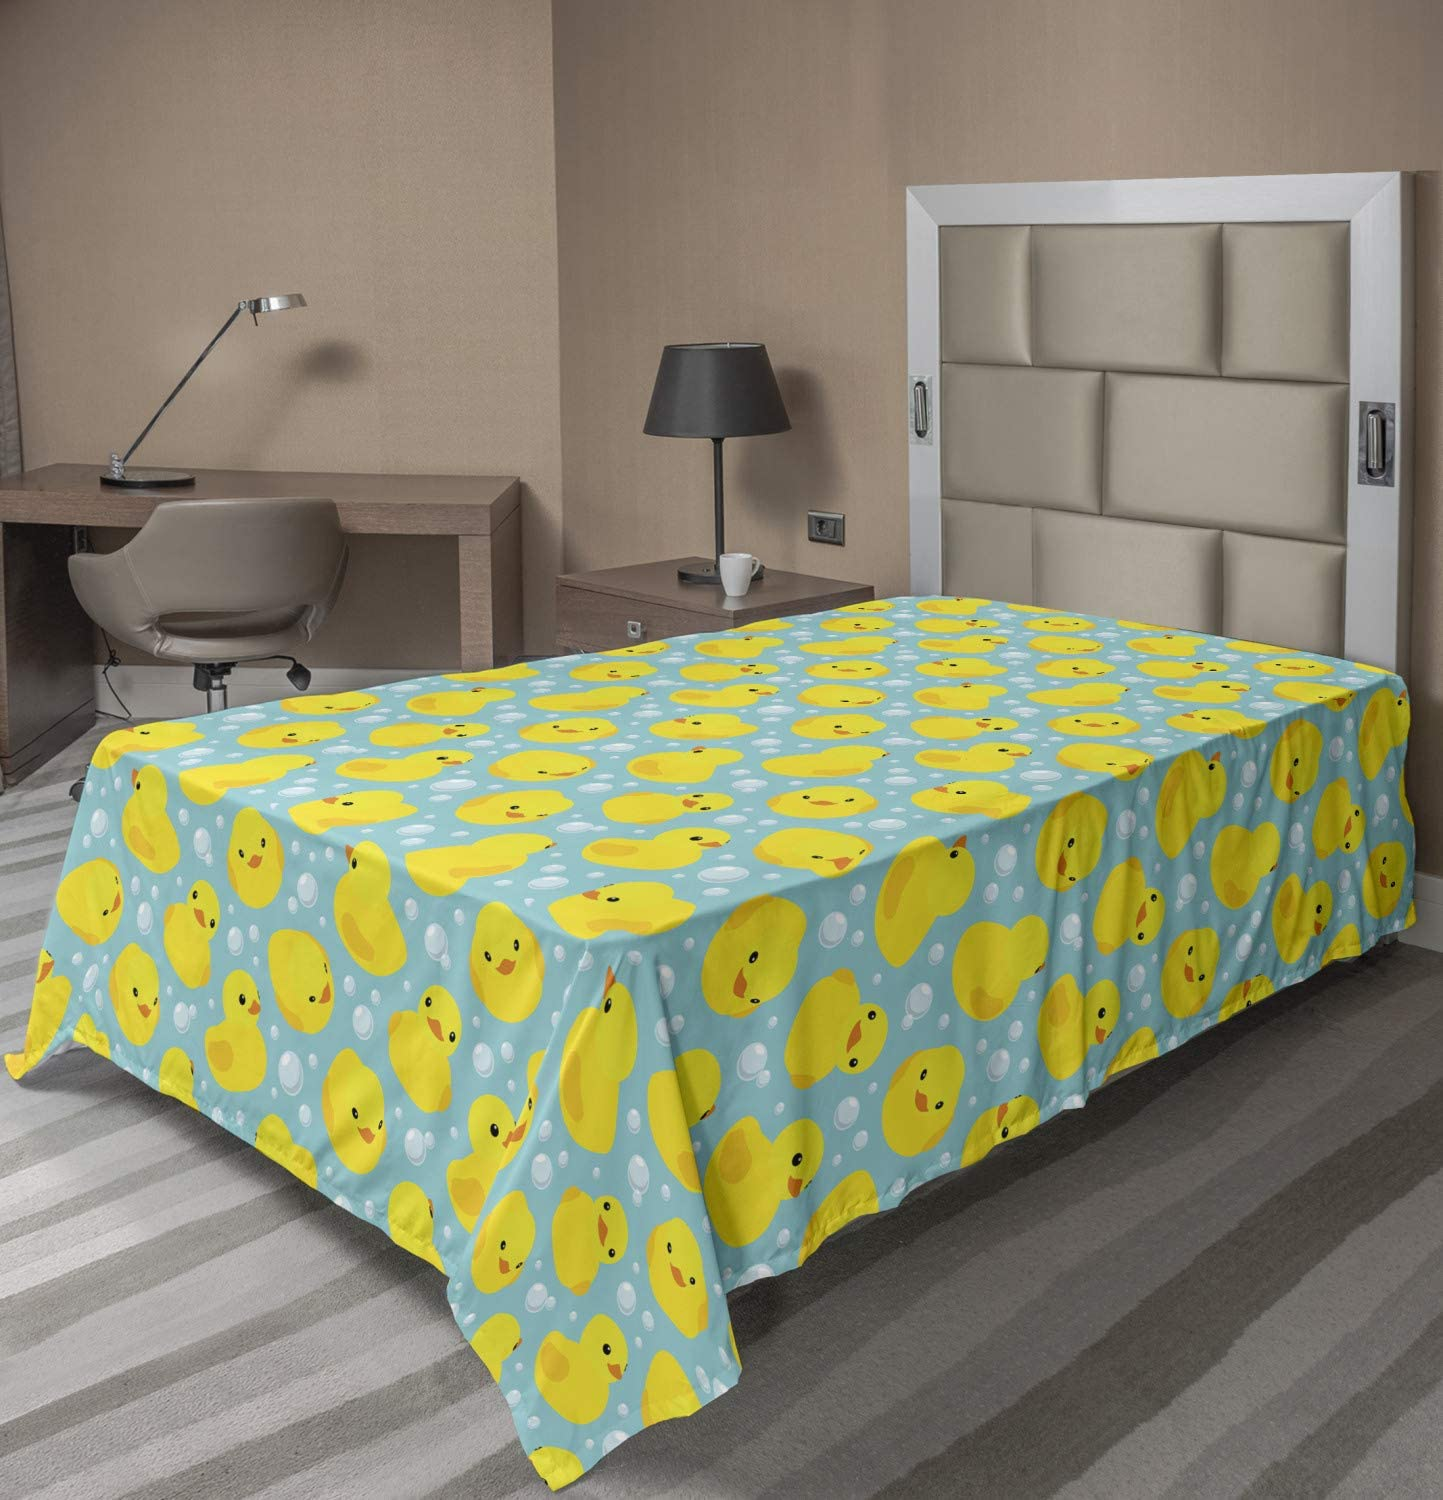 Rubber Ducks on Water Inspired Backdrop Bubbles Funny Pattern Twin Size Turquoise Yellow Orange Ambesonne Rubber Duck Flat Sheet Soft Comfortable Top Sheet Decorative Bedding 1 Piece